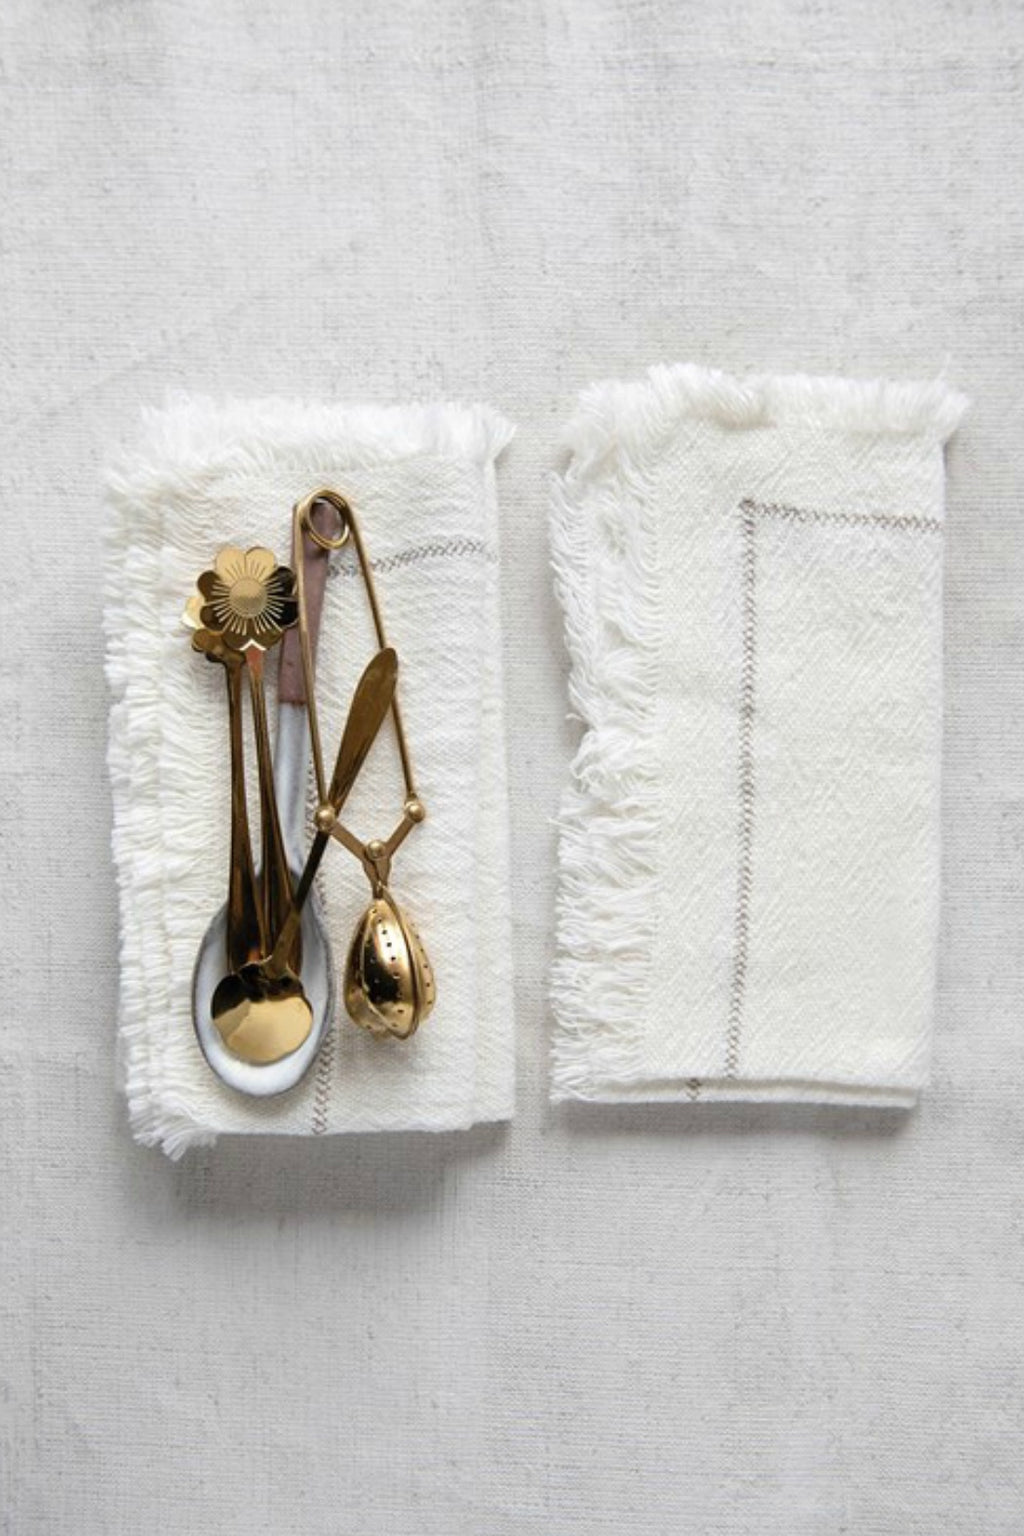 Creative Co-Op Fringed Woven Cotton Napkins